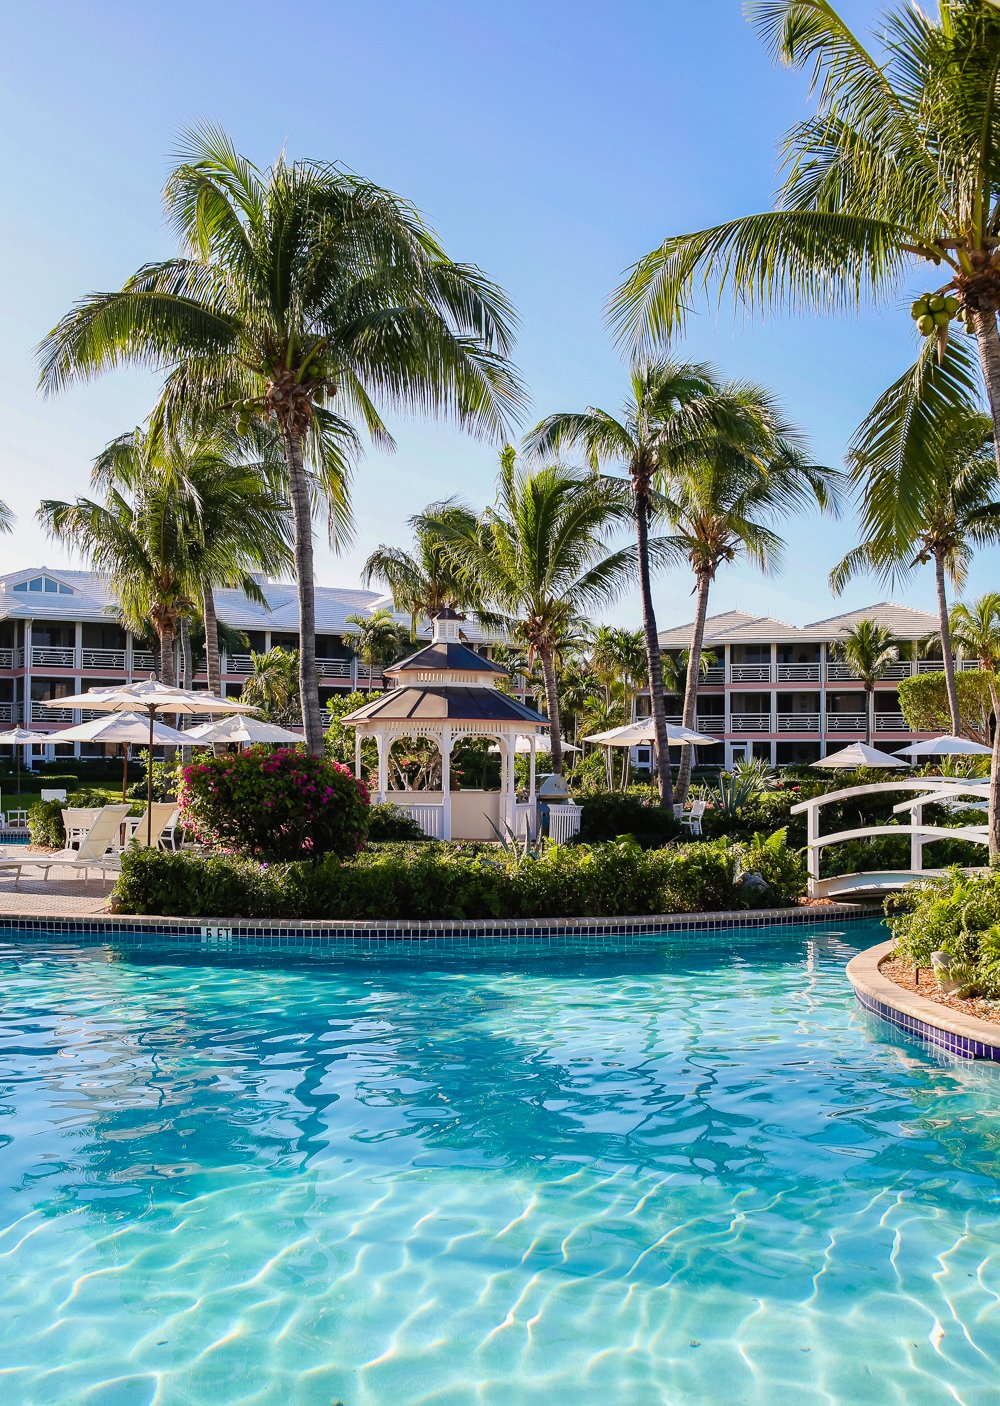 Escape the Winter Blues at Ocean Club Resorts: Turks & Caicos 31 Daily Mom Parents Portal